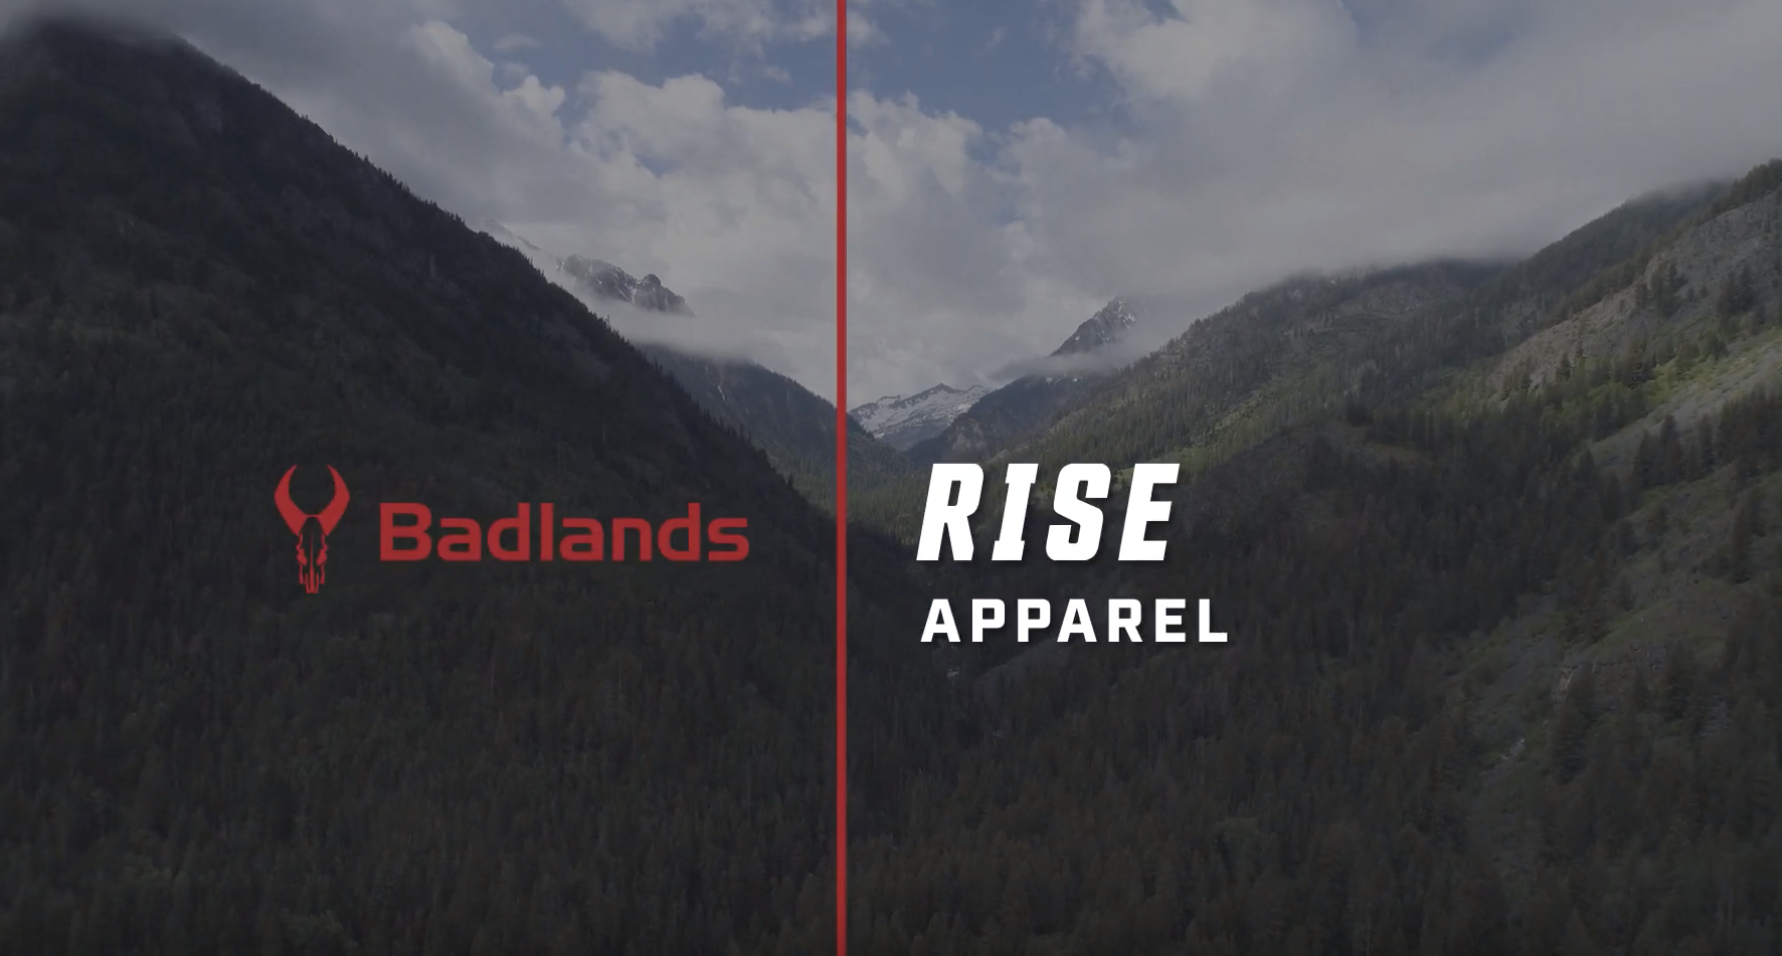 Learn more about the Rise Apparel